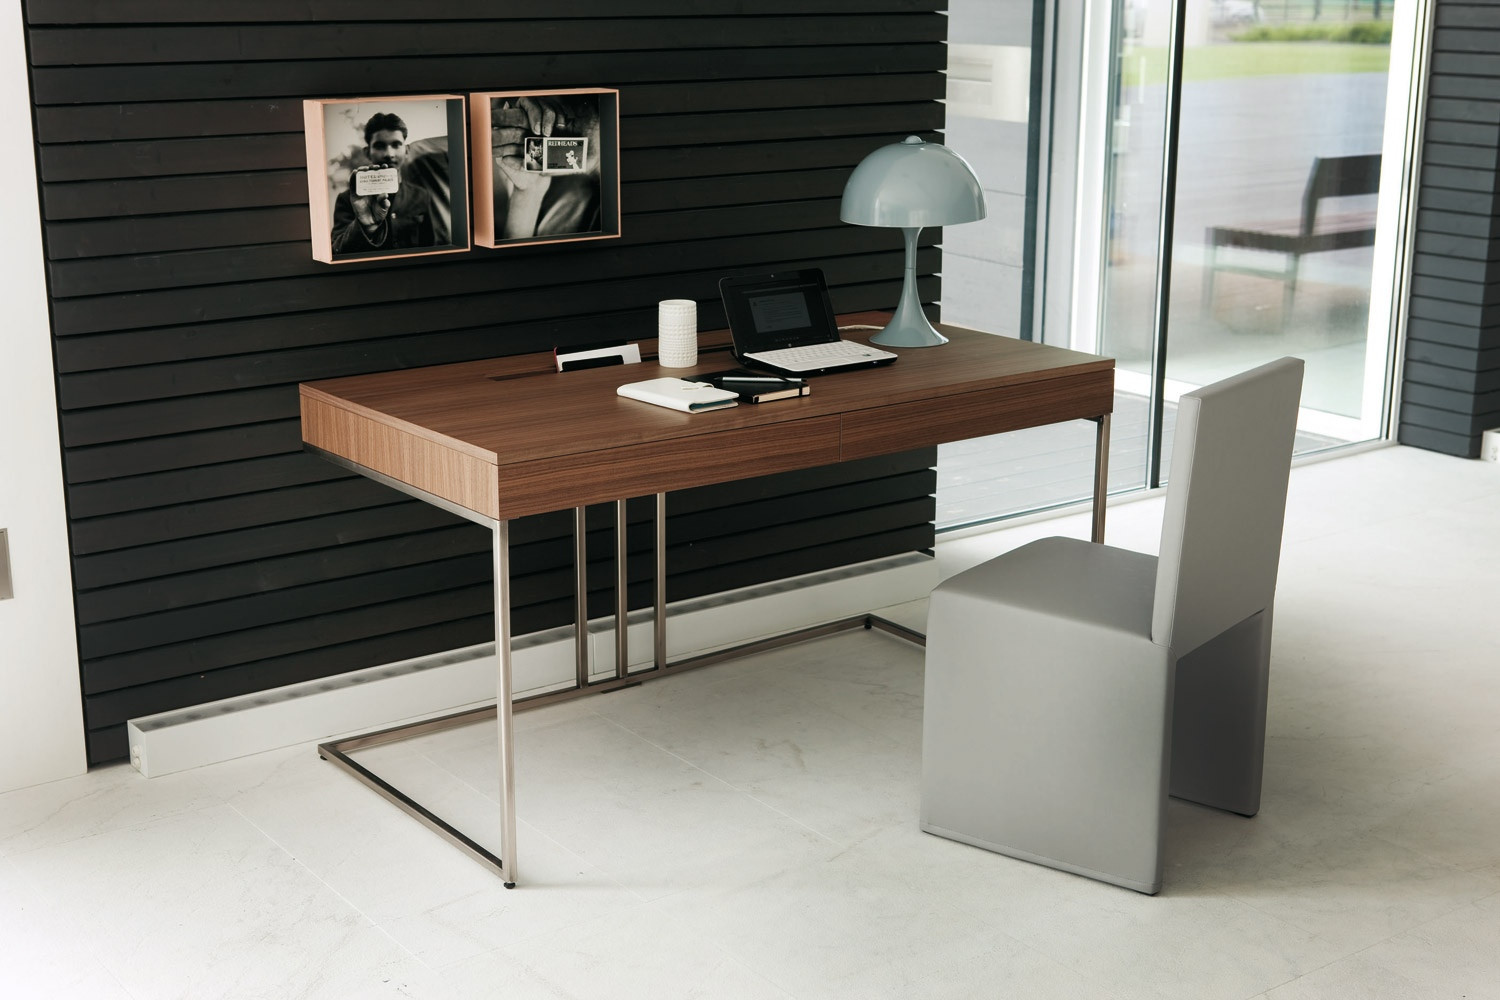 Best ideas about Office Desks For Home . Save or Pin 30 Inspirational Home fice Desks Now.